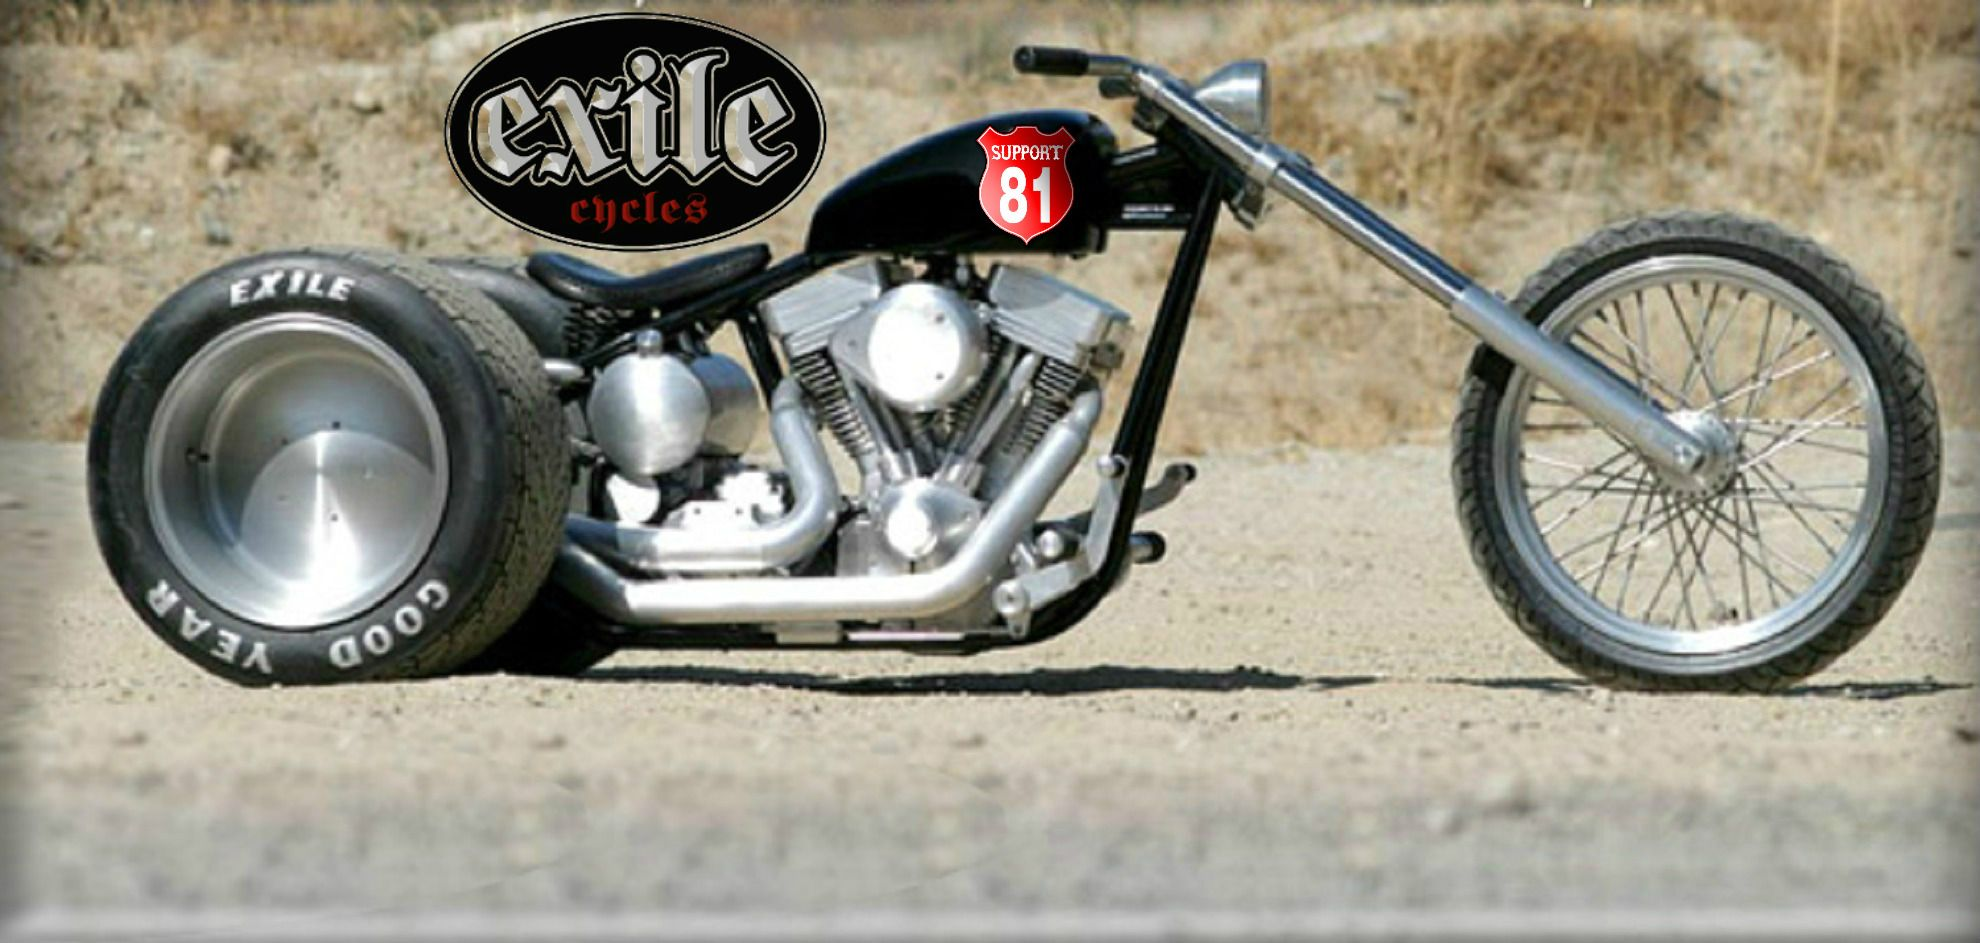 Russell mitchell s exile cycles discovery trike with route 81 emblem http